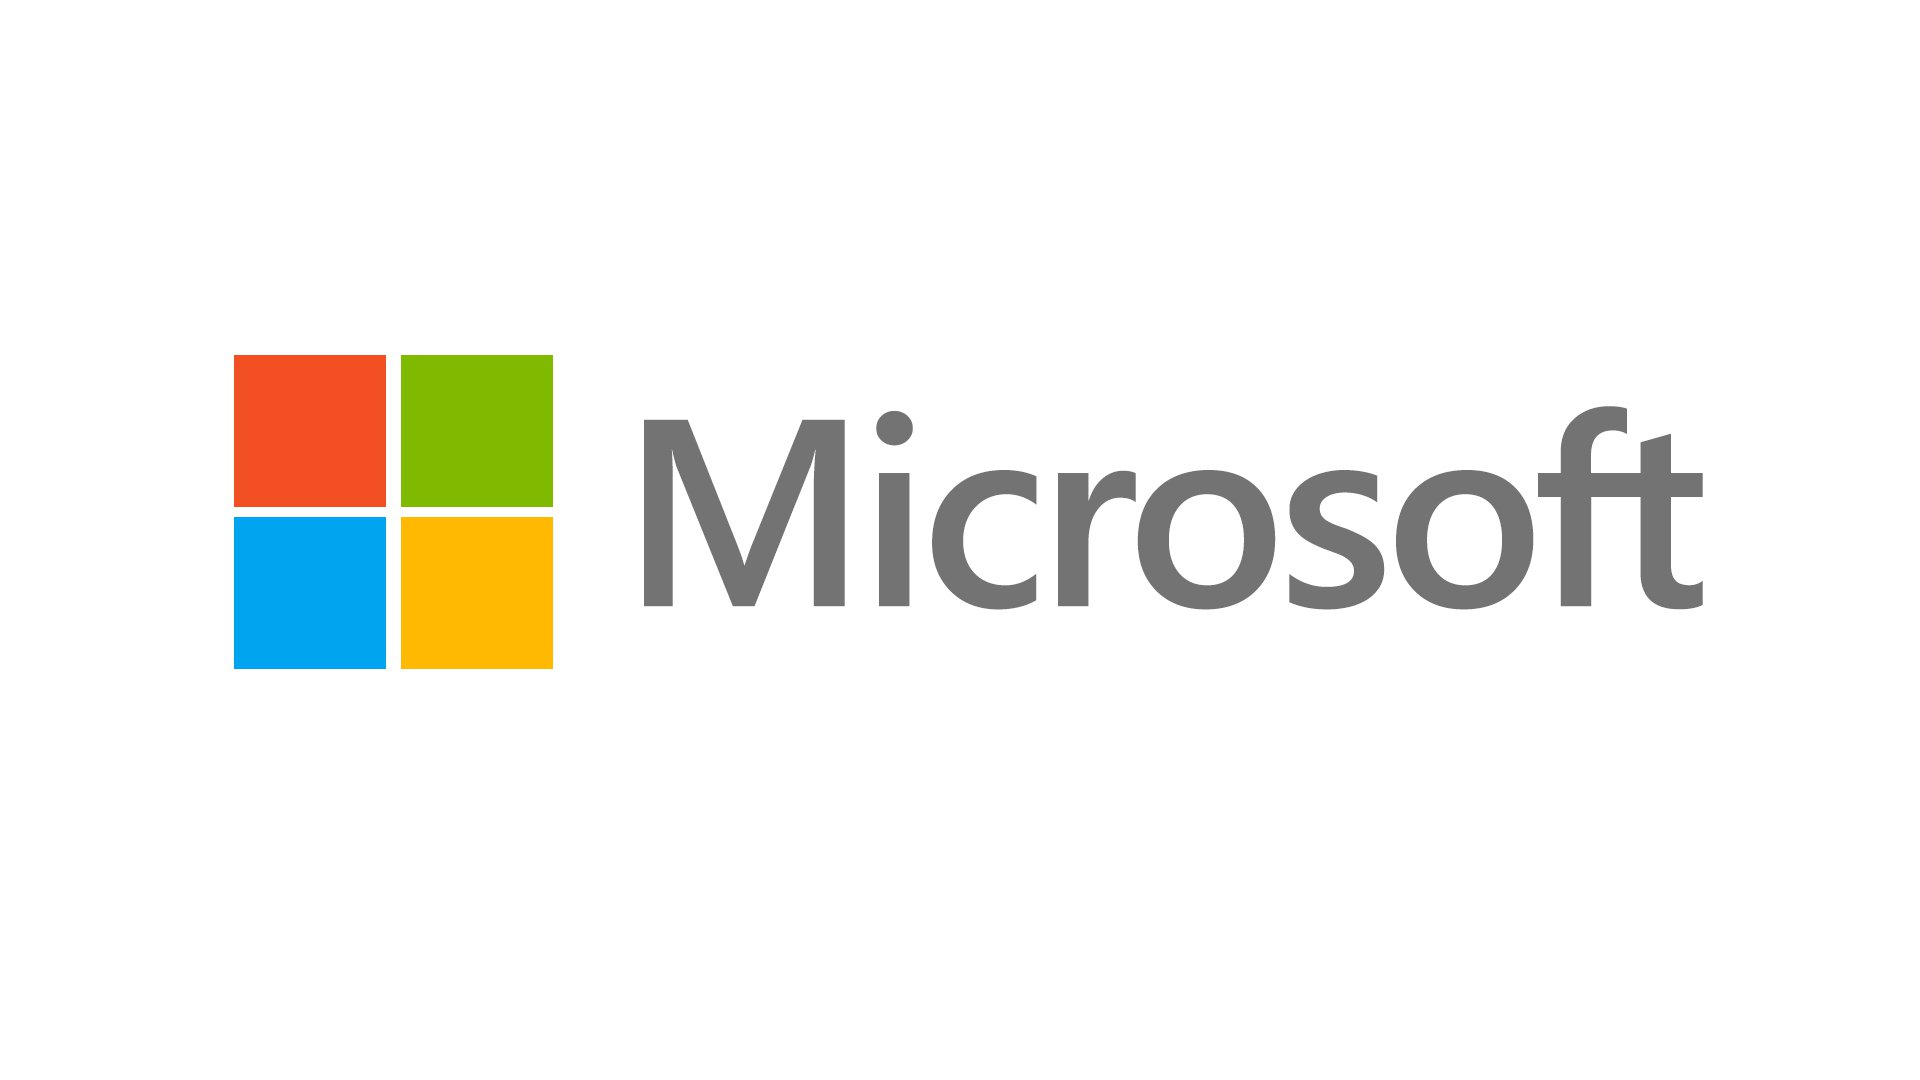 Microsoft Announces Build Conference for May 19th